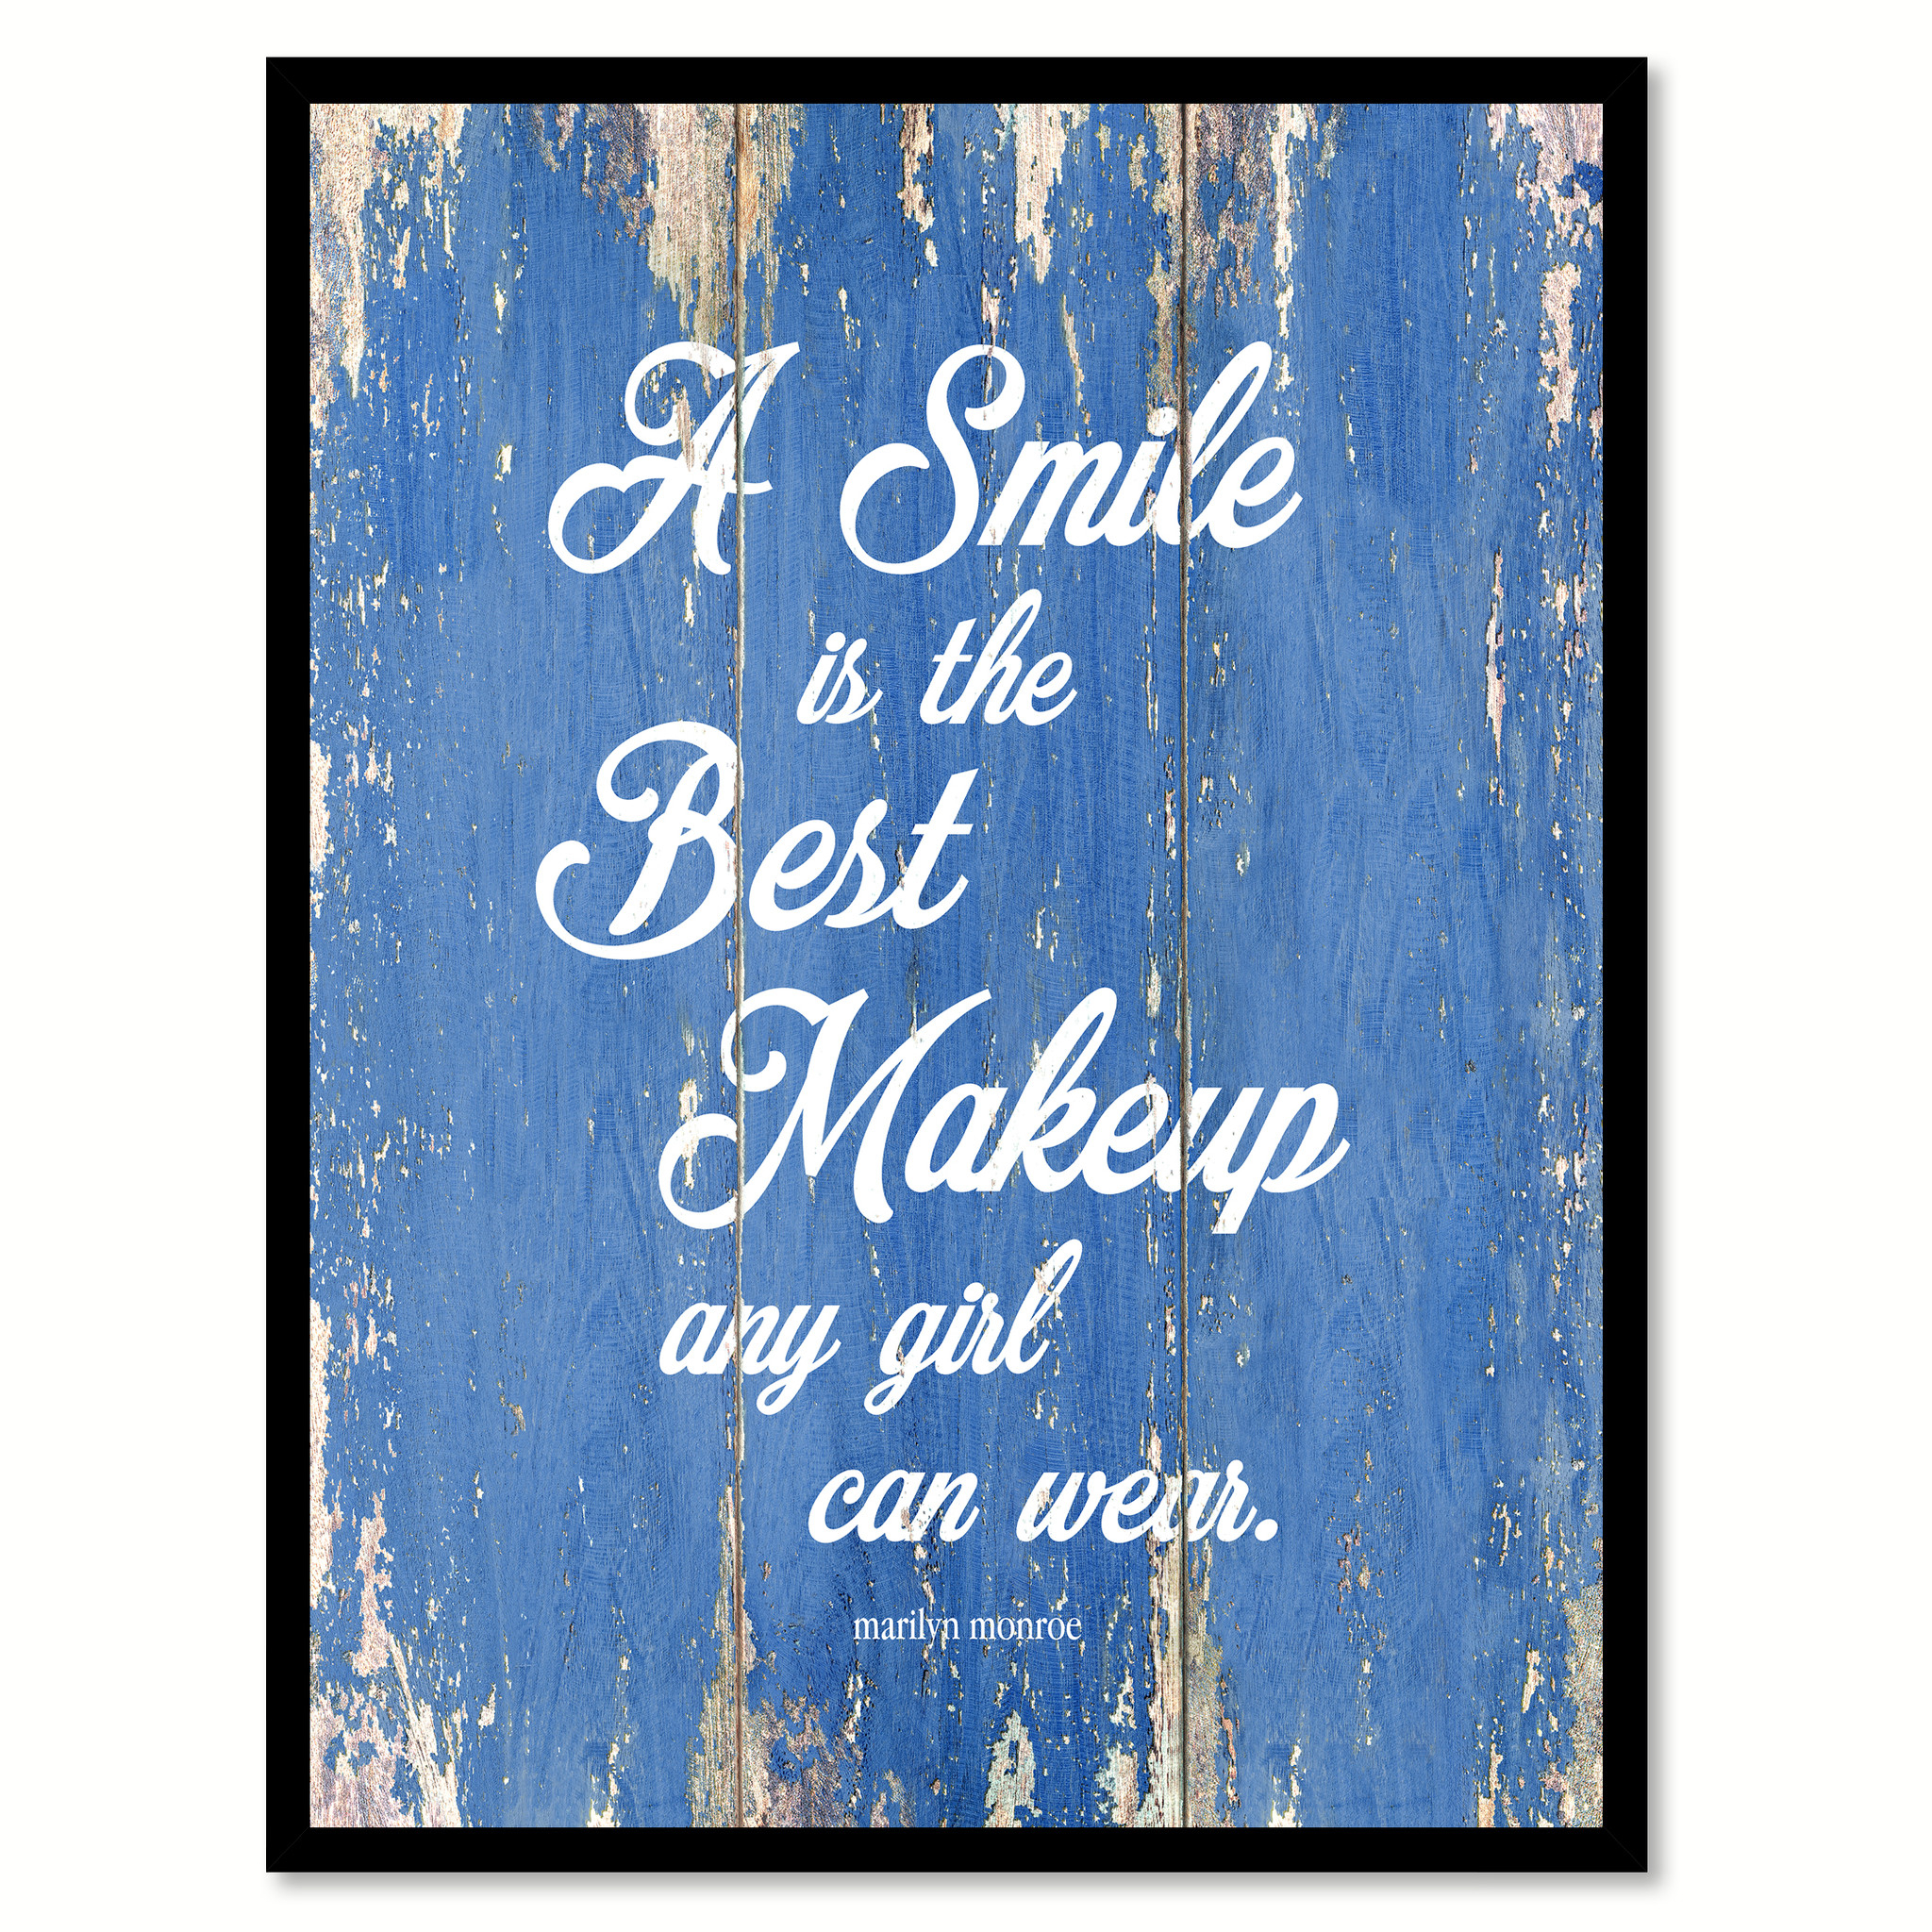 "A Smile Is The Best Makeup Marilyn Monroe Quote Saying Canvas Print with Picture Frame Home Decor Wall Art Gifts 121744 - 7""x9\"""